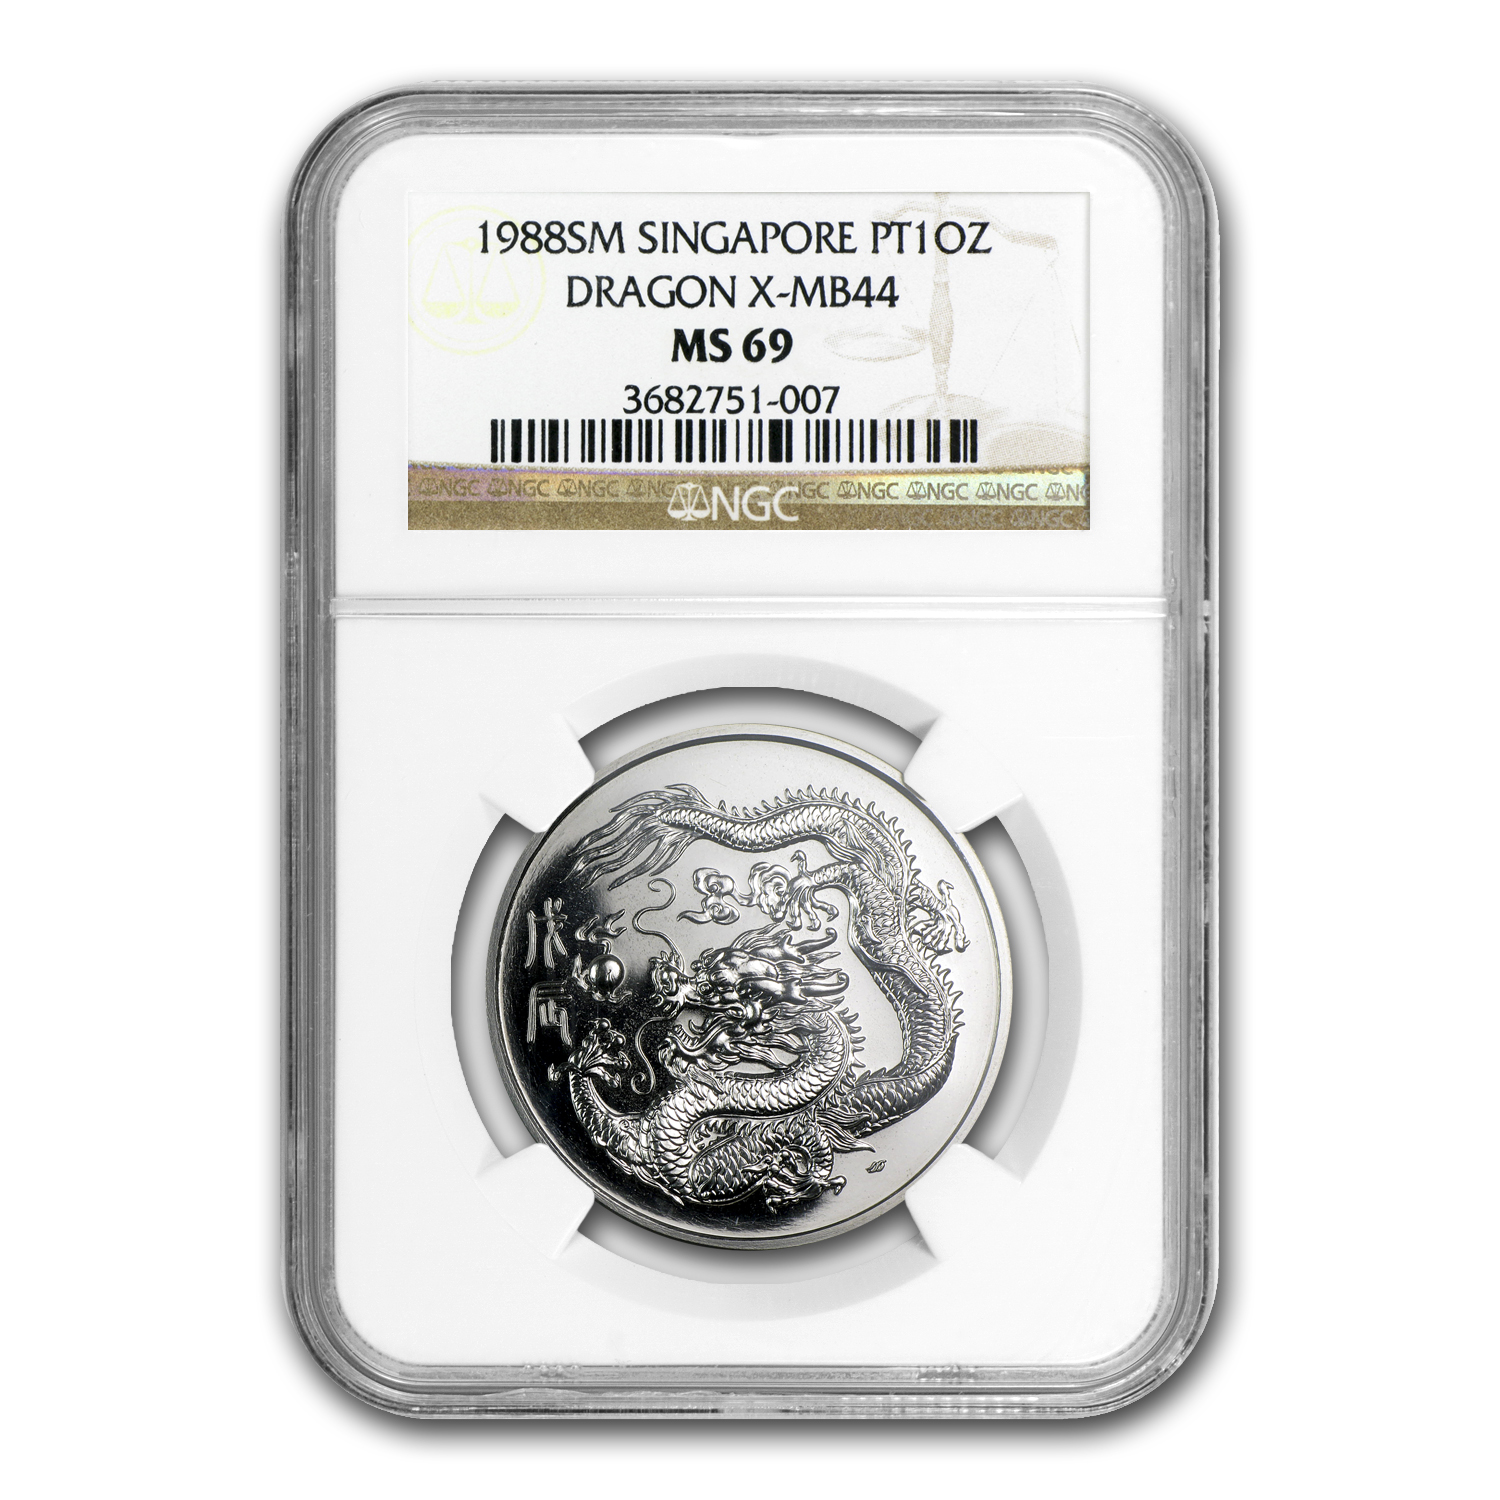 1988 1 oz Platinum Singapore Dragon X-MB44 MS-69 NGC